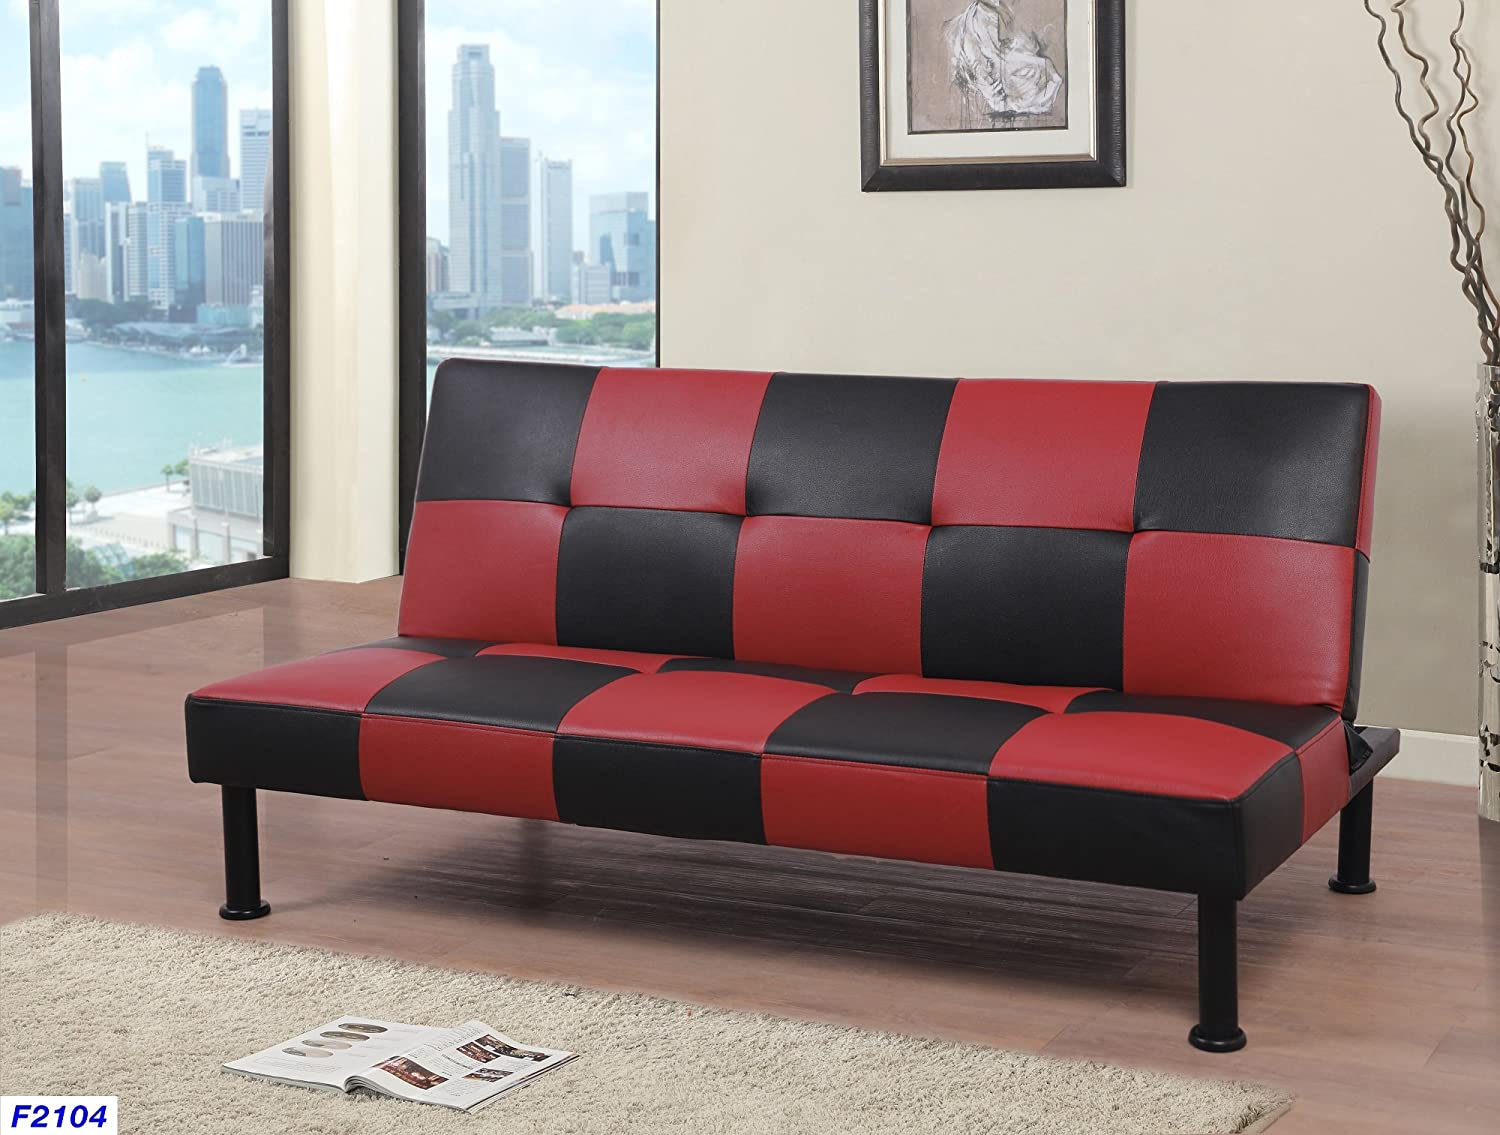 Awesome Beverly Fine Furniture F2104 Checkered Futon Sofa Bed 64 X 39 X 14 5 30 5 H Black Ncnpc Chair Design For Home Ncnpcorg